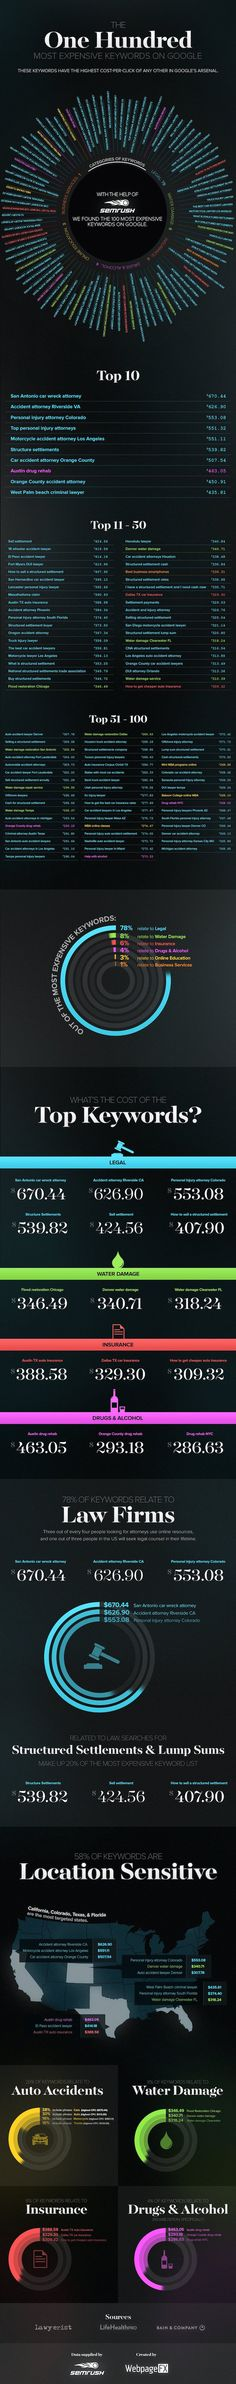 The 100 Most Expensive Keywords on Google [Infographic], via @HubSpot